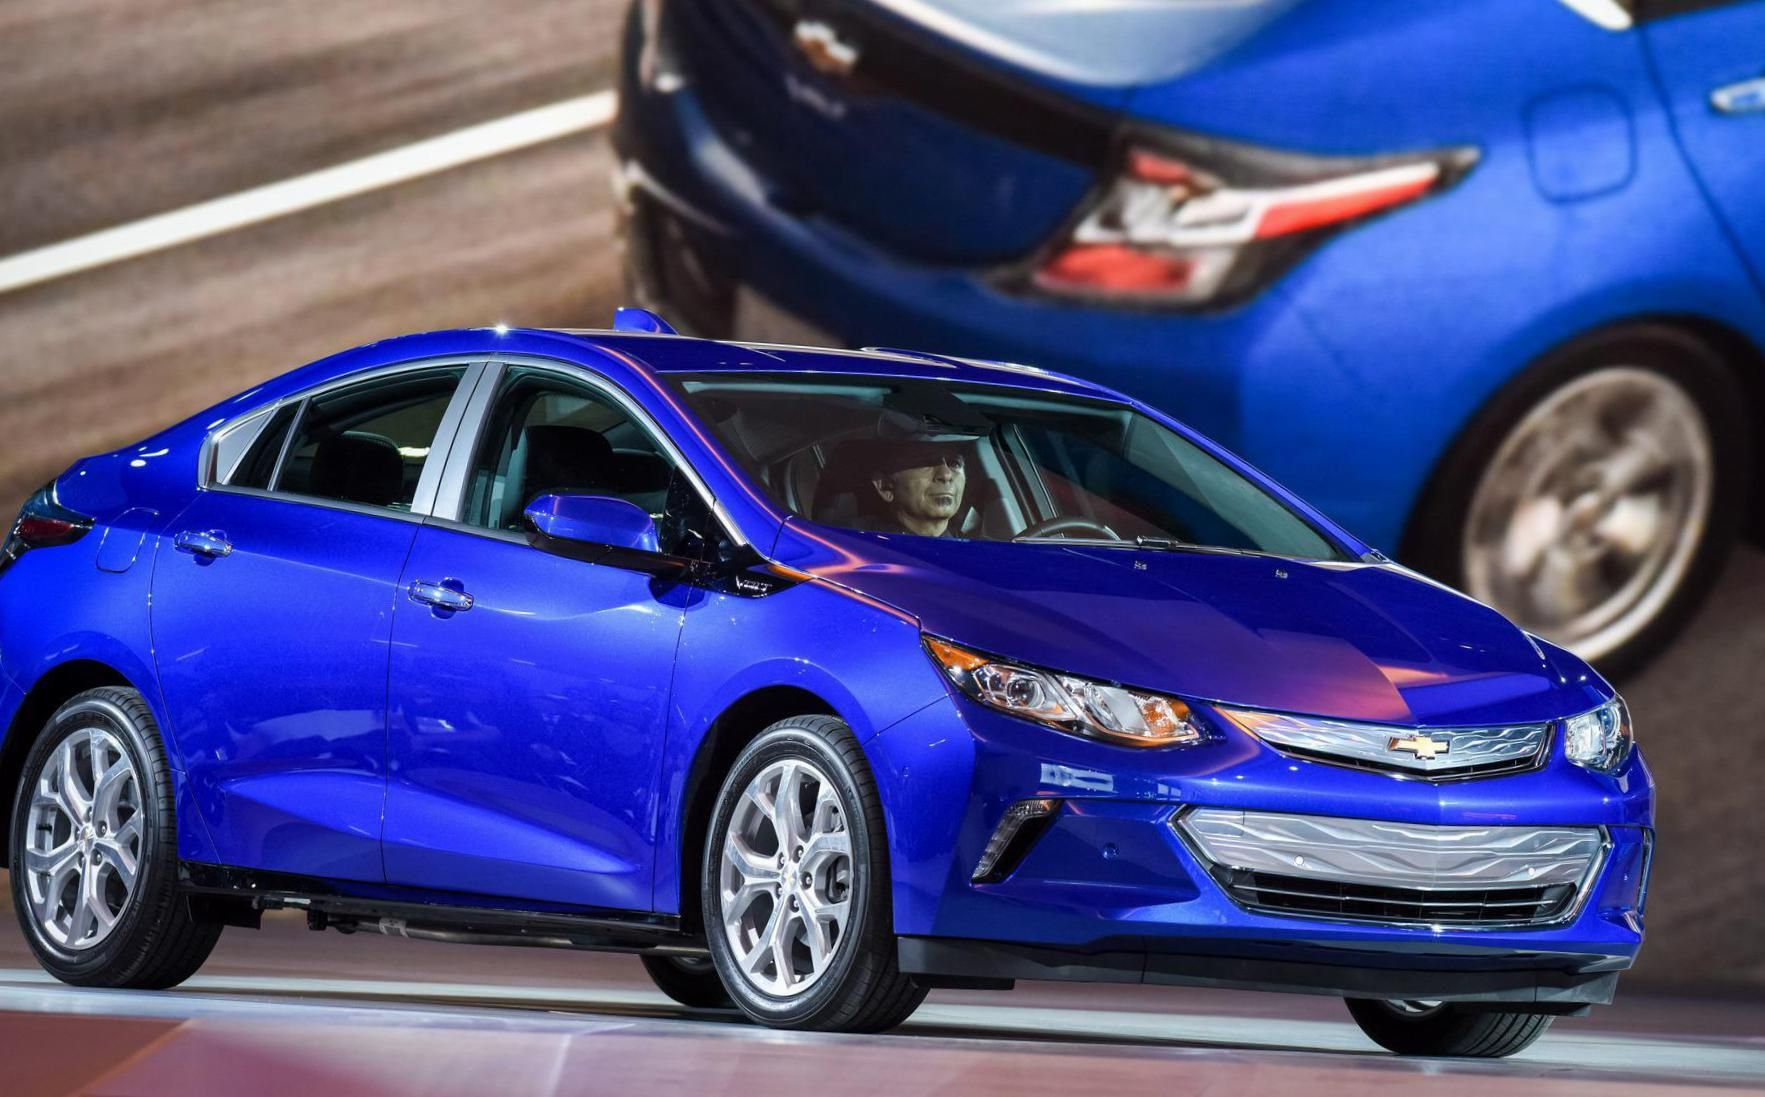 Chevrolet Volt The Latest Version Of Gm S Plug In Extended Range Hybrid Sedan Expands Its All Electric Mode To 50 Miles On A Single Charge